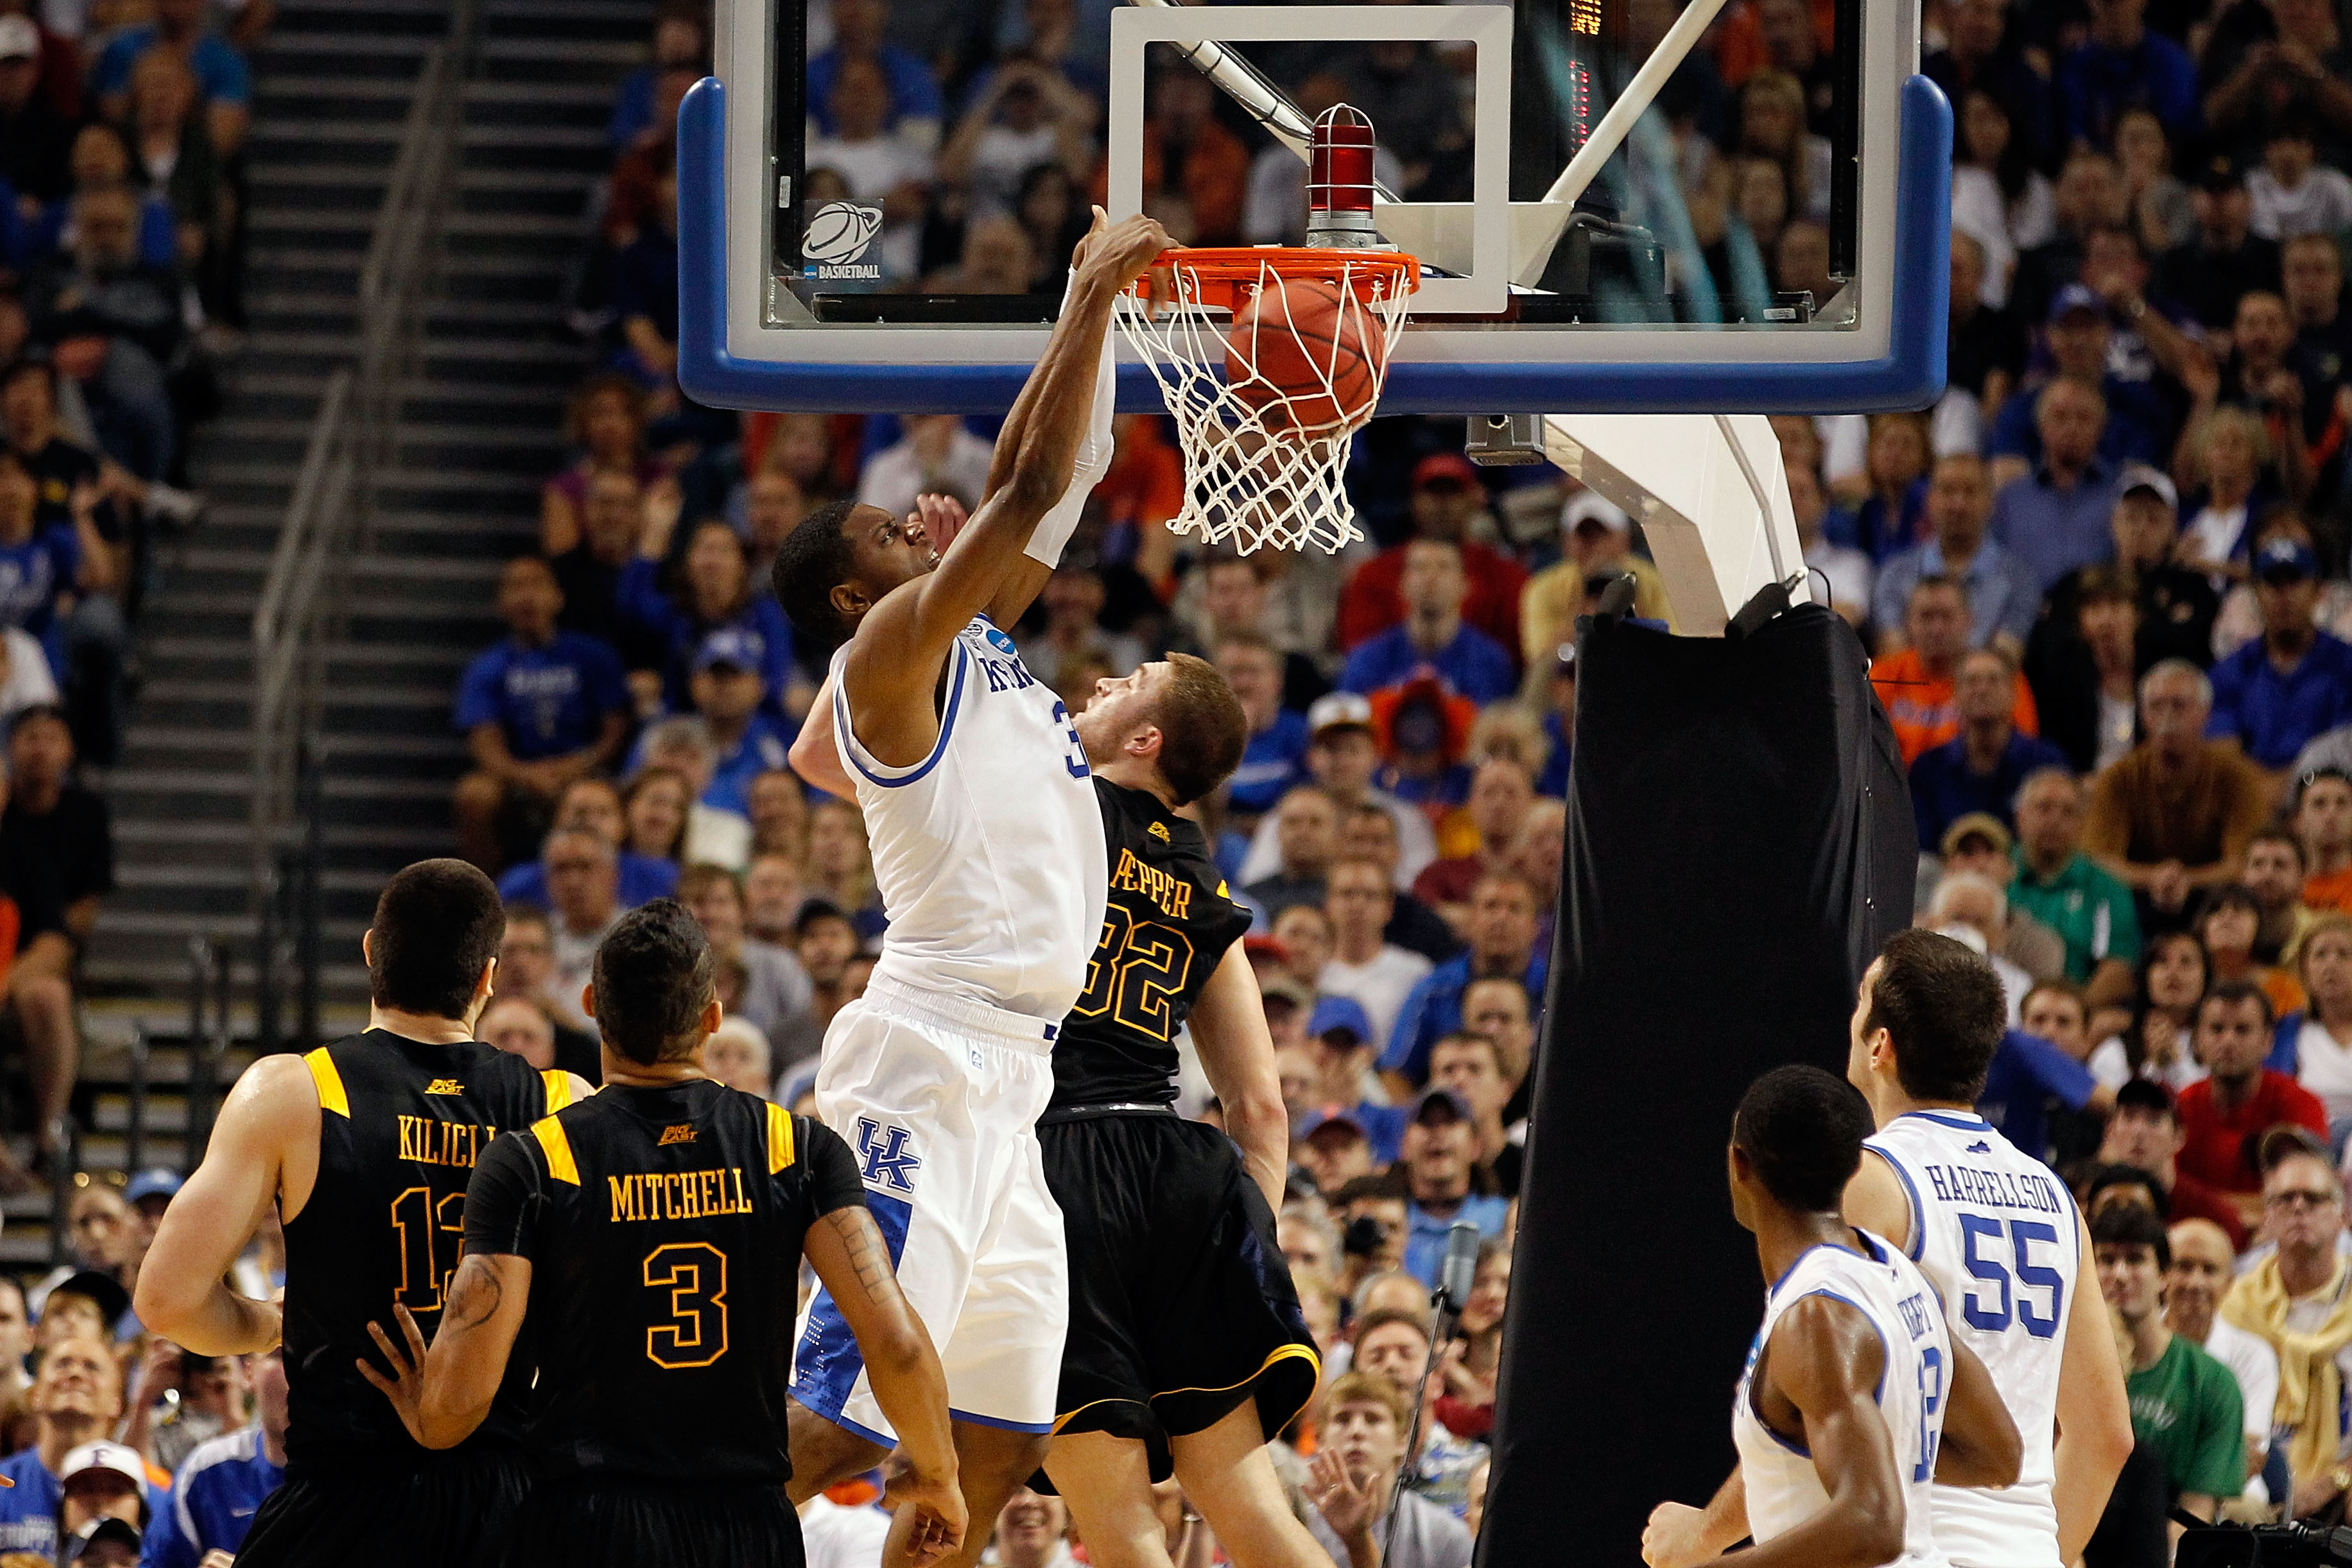 TAMPA, FL - MARCH 19:  Terrence Jones #3 of the Kentucky Wildcats dunks against Dalton Pepper #32 of the West Virginia Mountaineers during the third round of the 2011 NCAA men's basketball tournament at St. Pete Times Forum on March 19, 2011 in Tampa, Flo